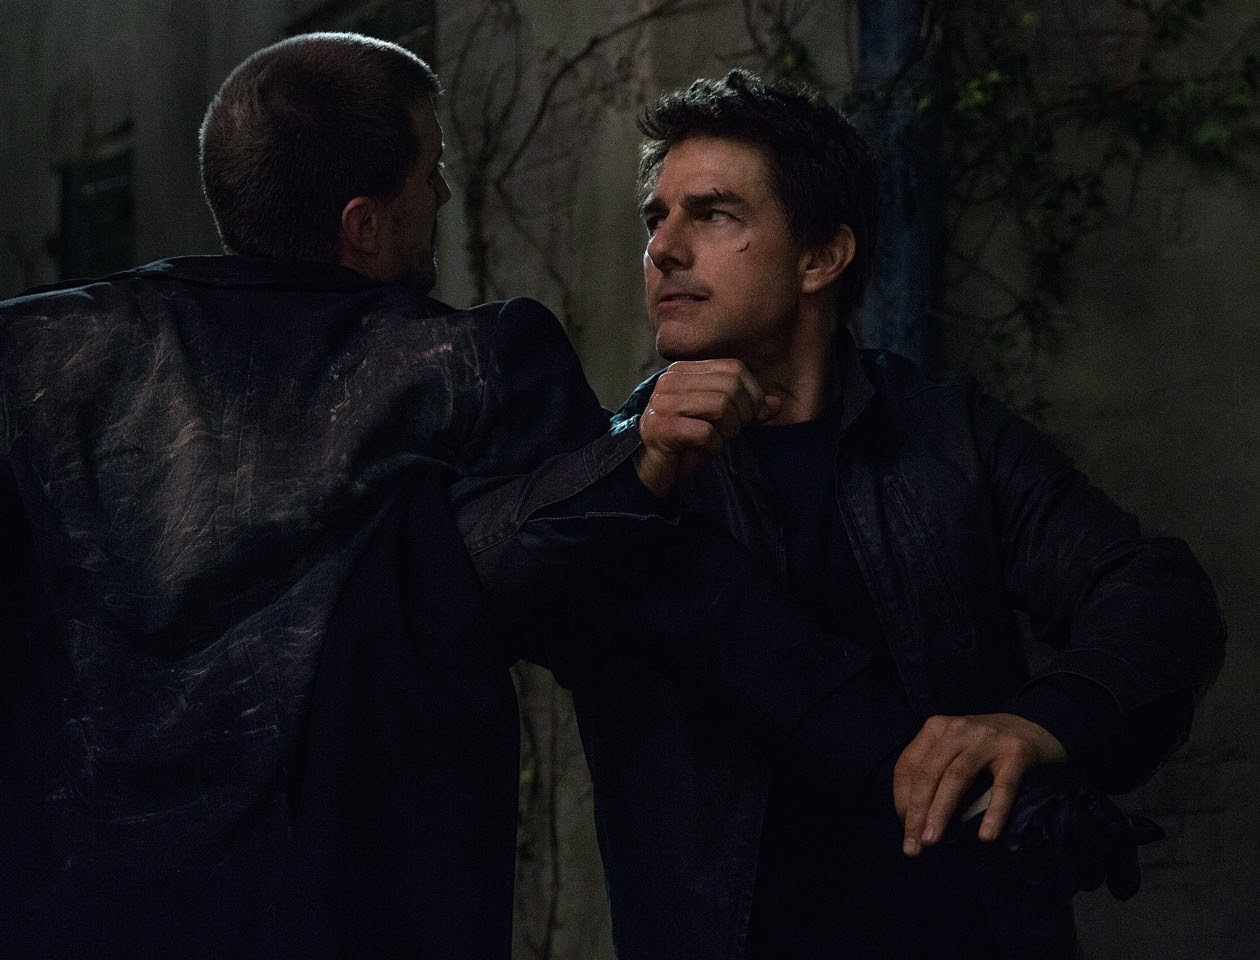 Left to right: Patrick Heusinger plays The Hunter and Tom Cruise plays Jack Reacher in JACK REACHER: NEVER GO BACK from Paramount Pictures and Skydance Productions.